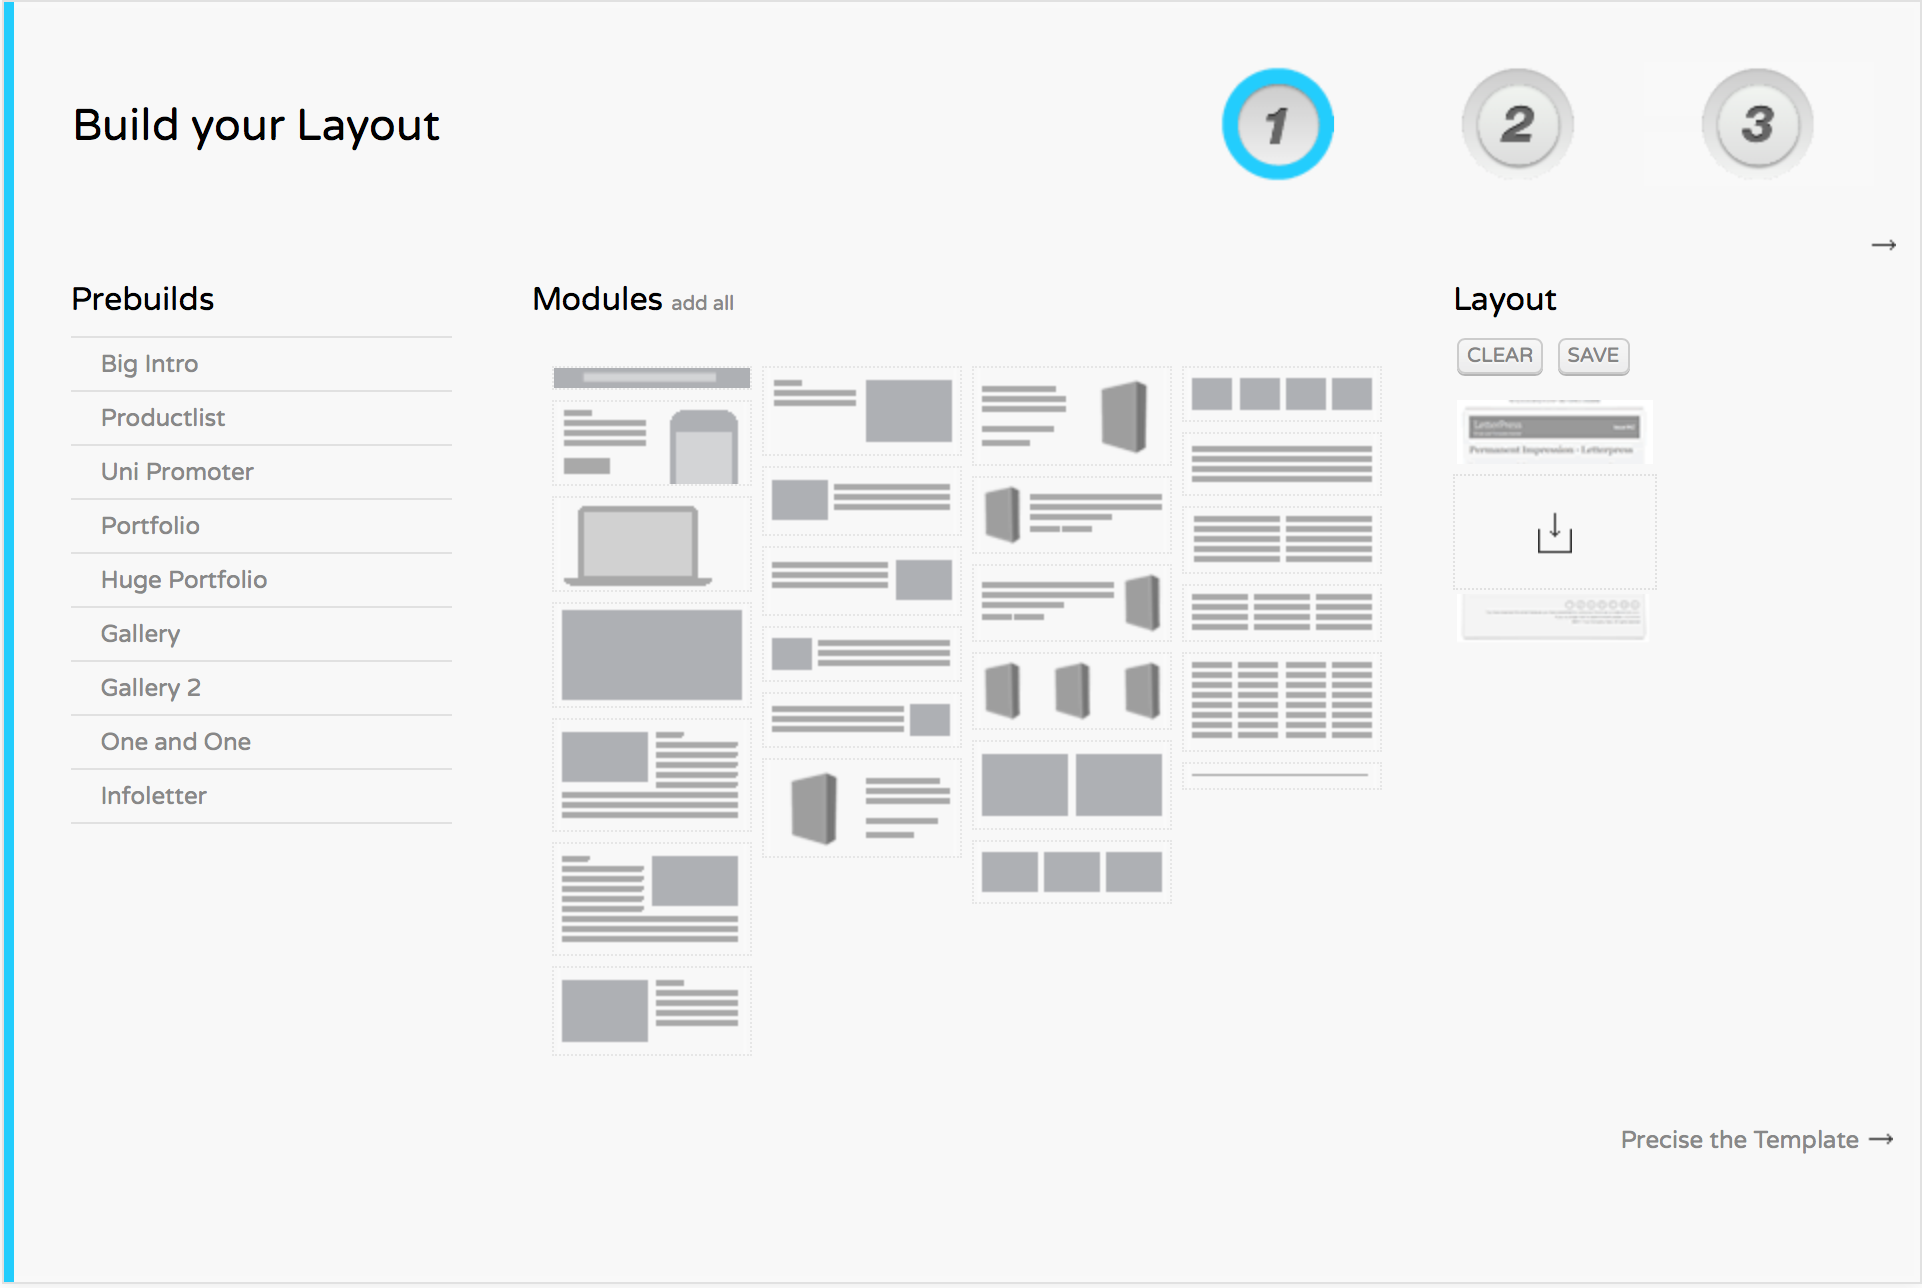 LetterPress allows you to build a quick template directly from your browser.